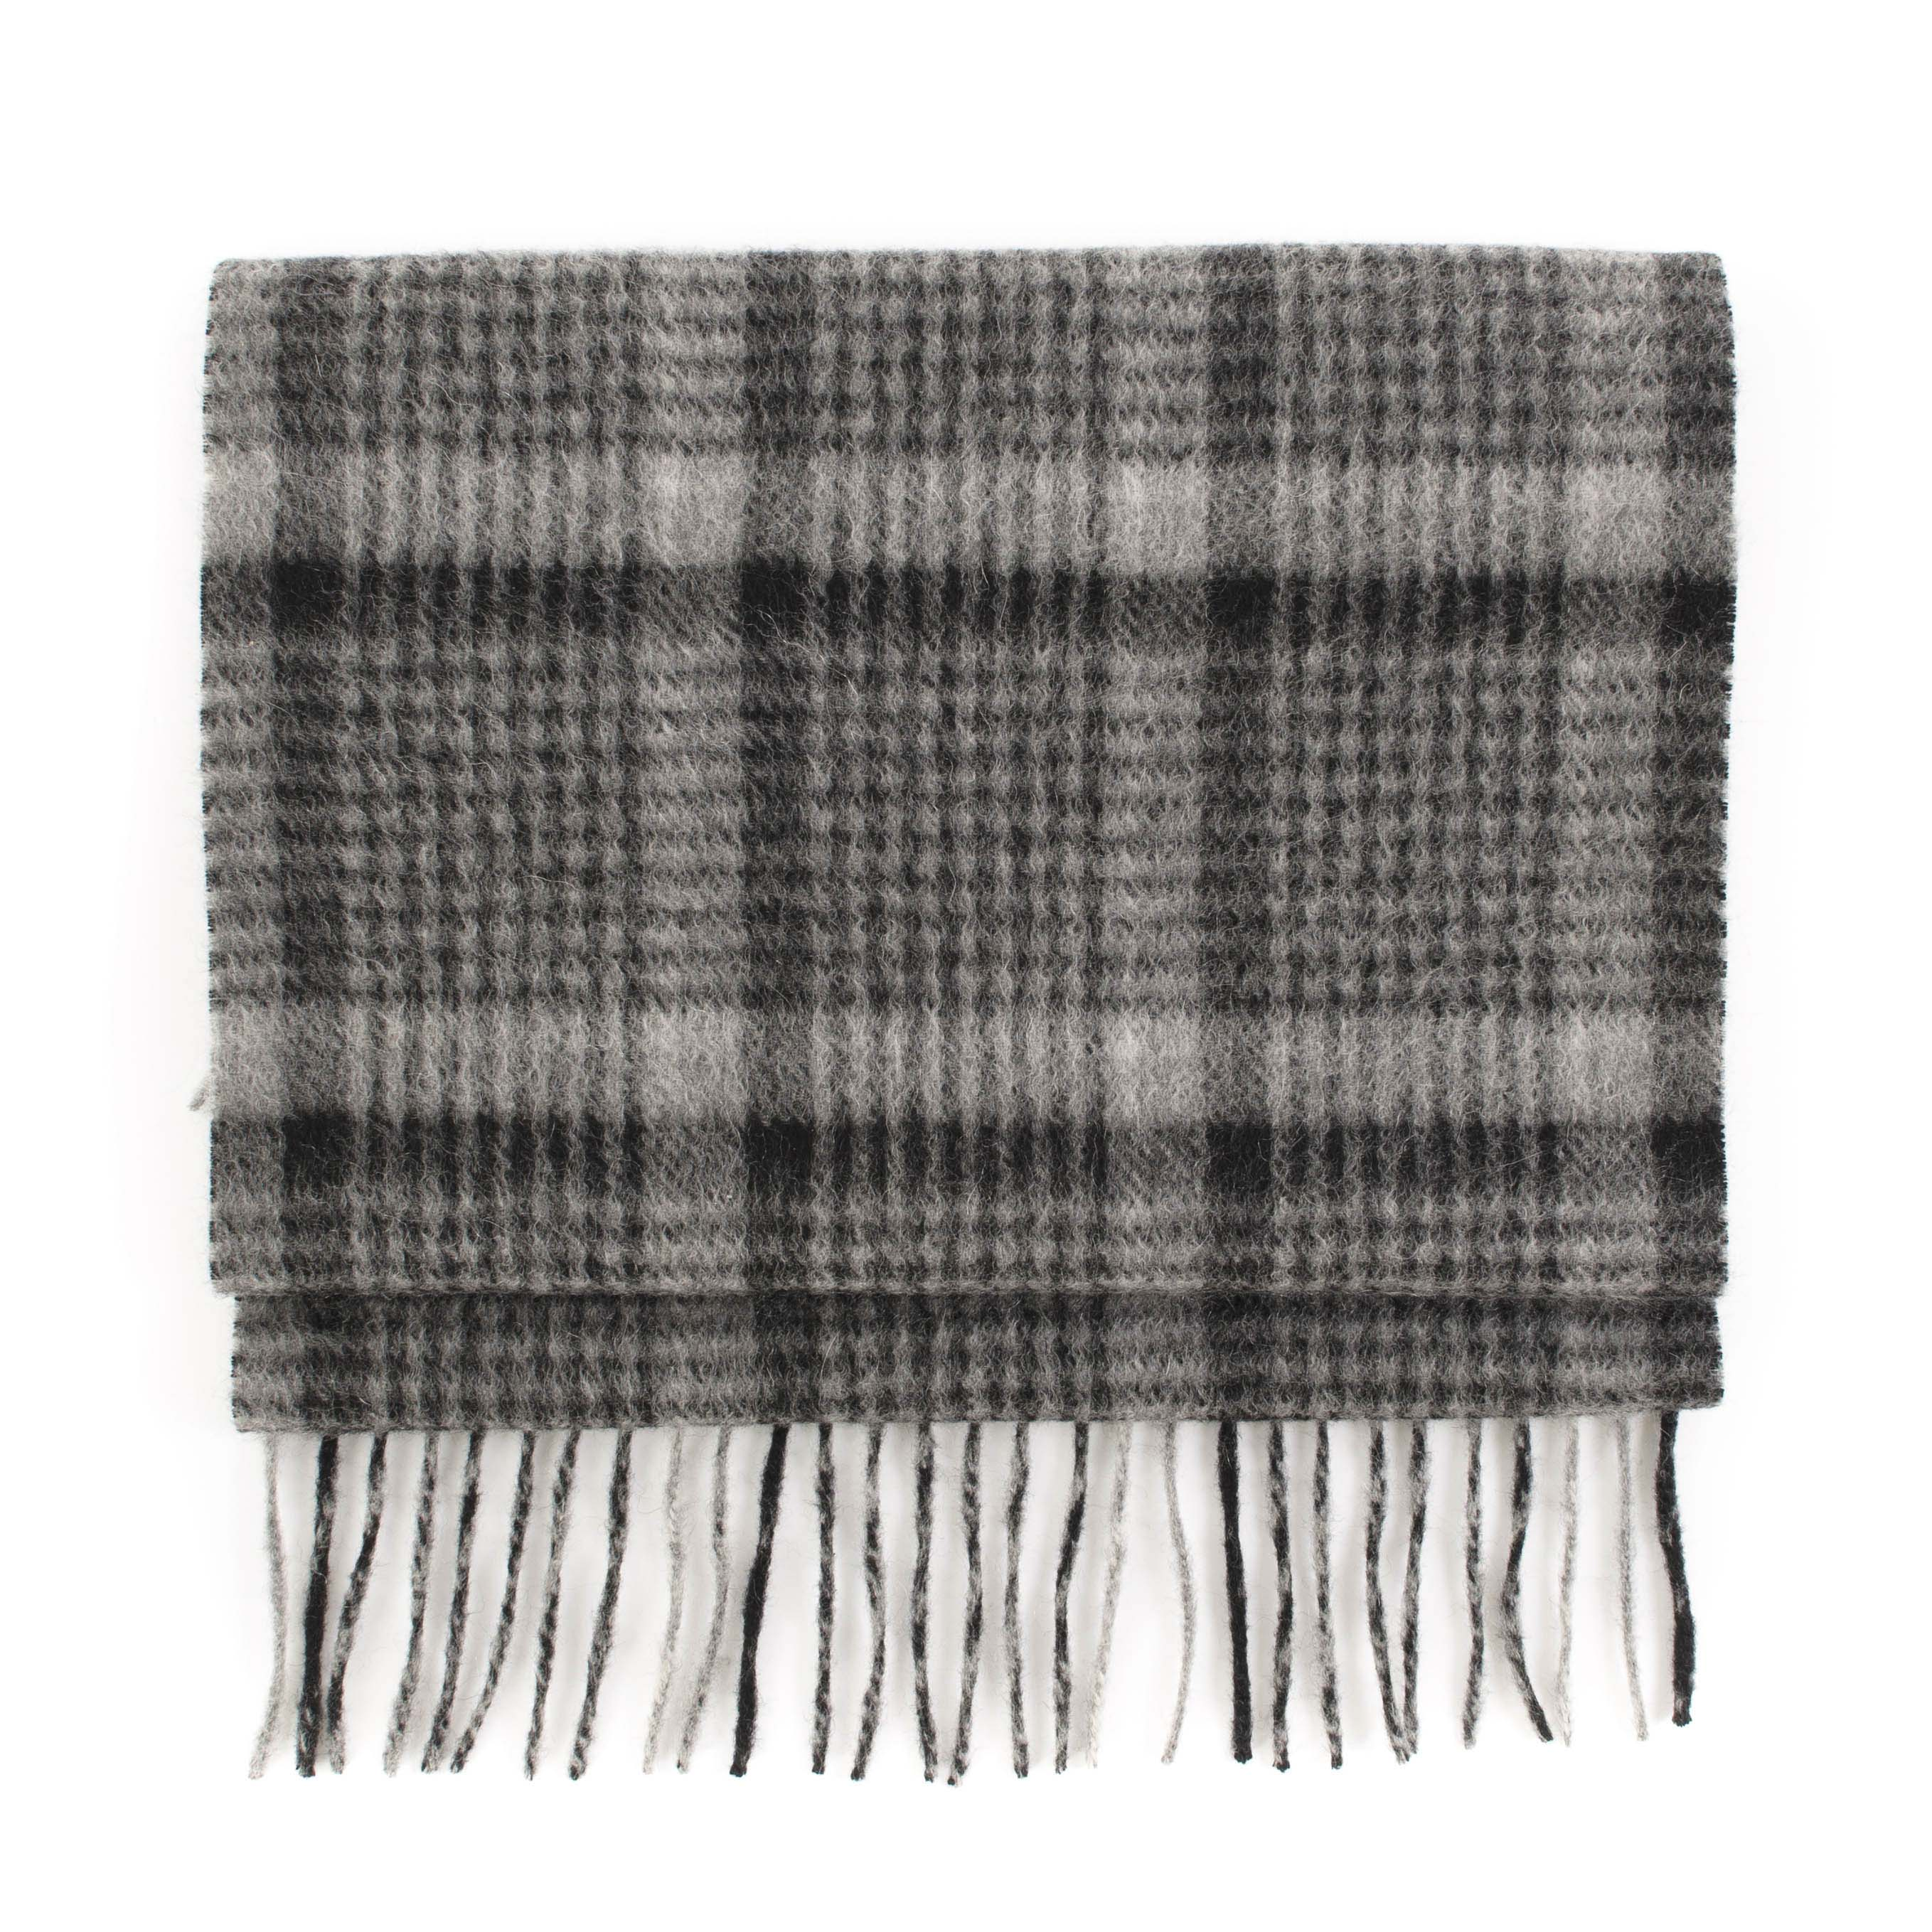 Cashmere scarf check, black, grey